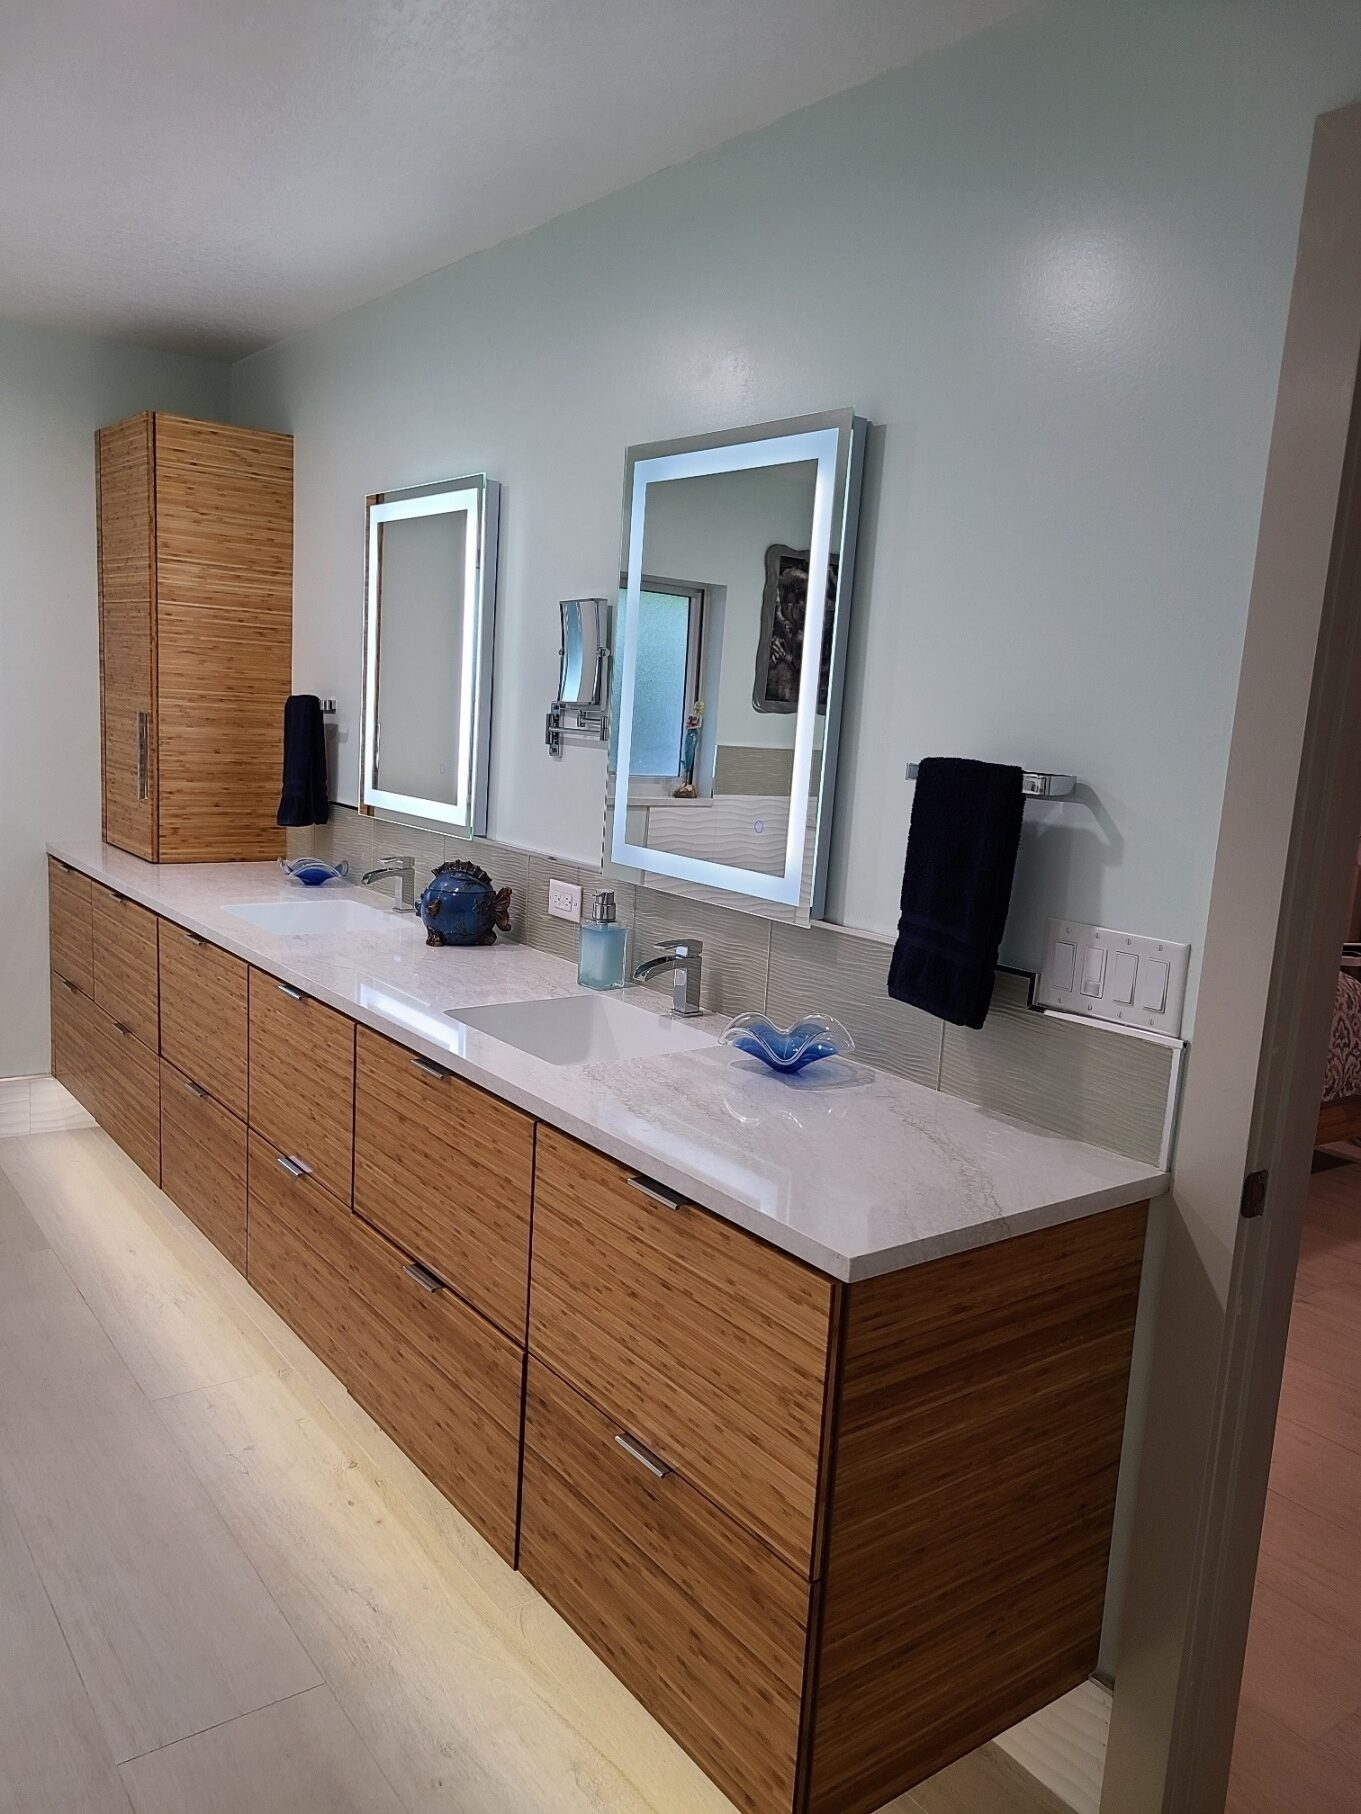 The Cabinet Gallery in Stuart Florida is your bathroom vanity source for Palm City, Port St. Lucie, Hobe Sound and Jupiter Florida.